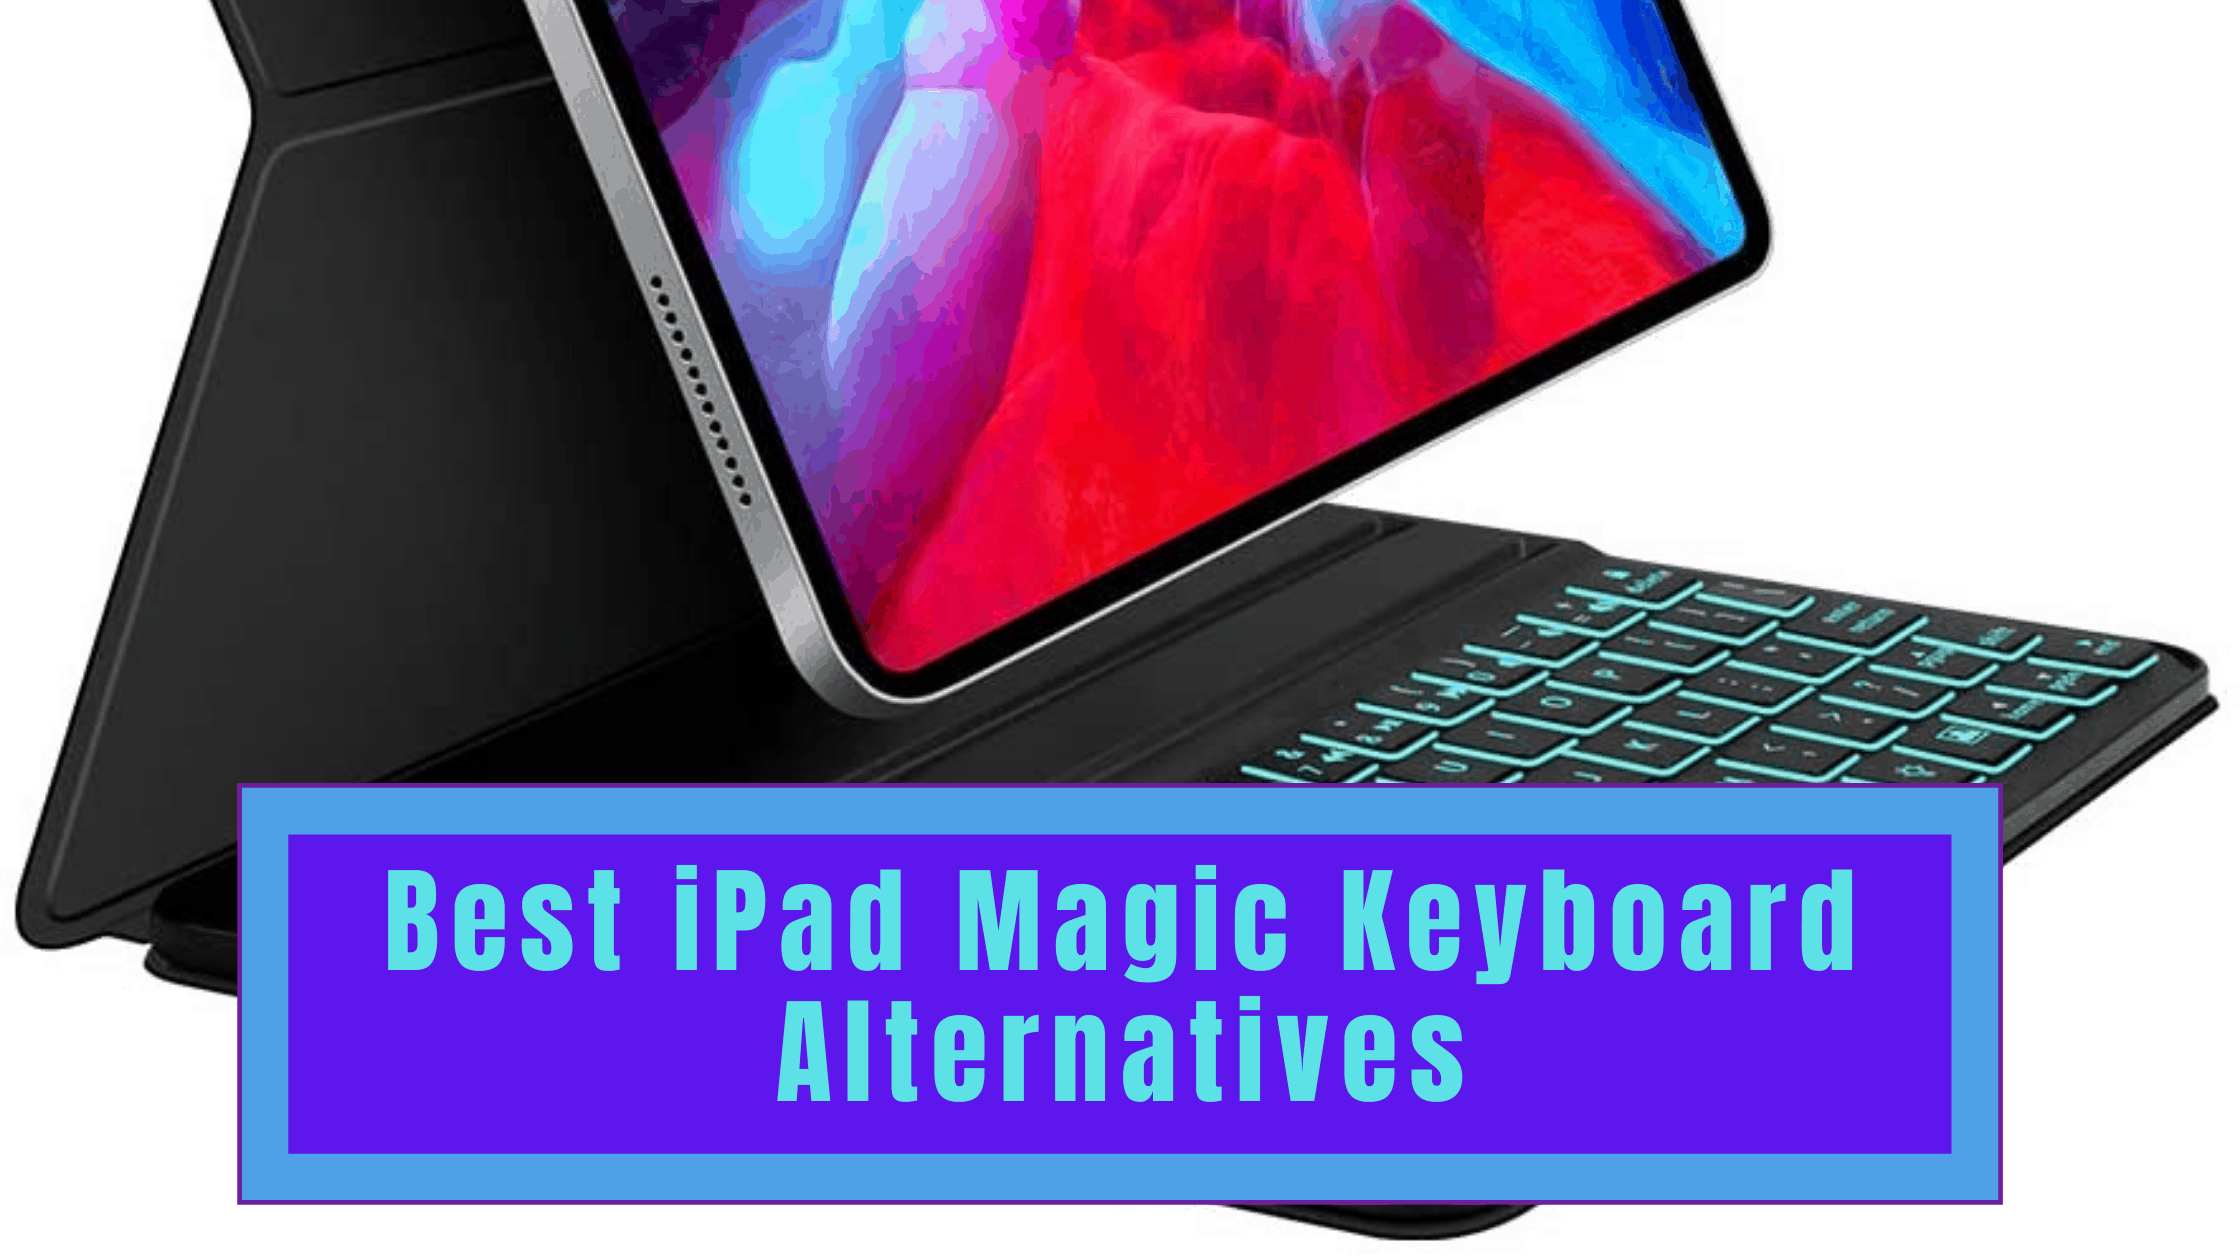 Best iPad Magic Keyboard Alternatives